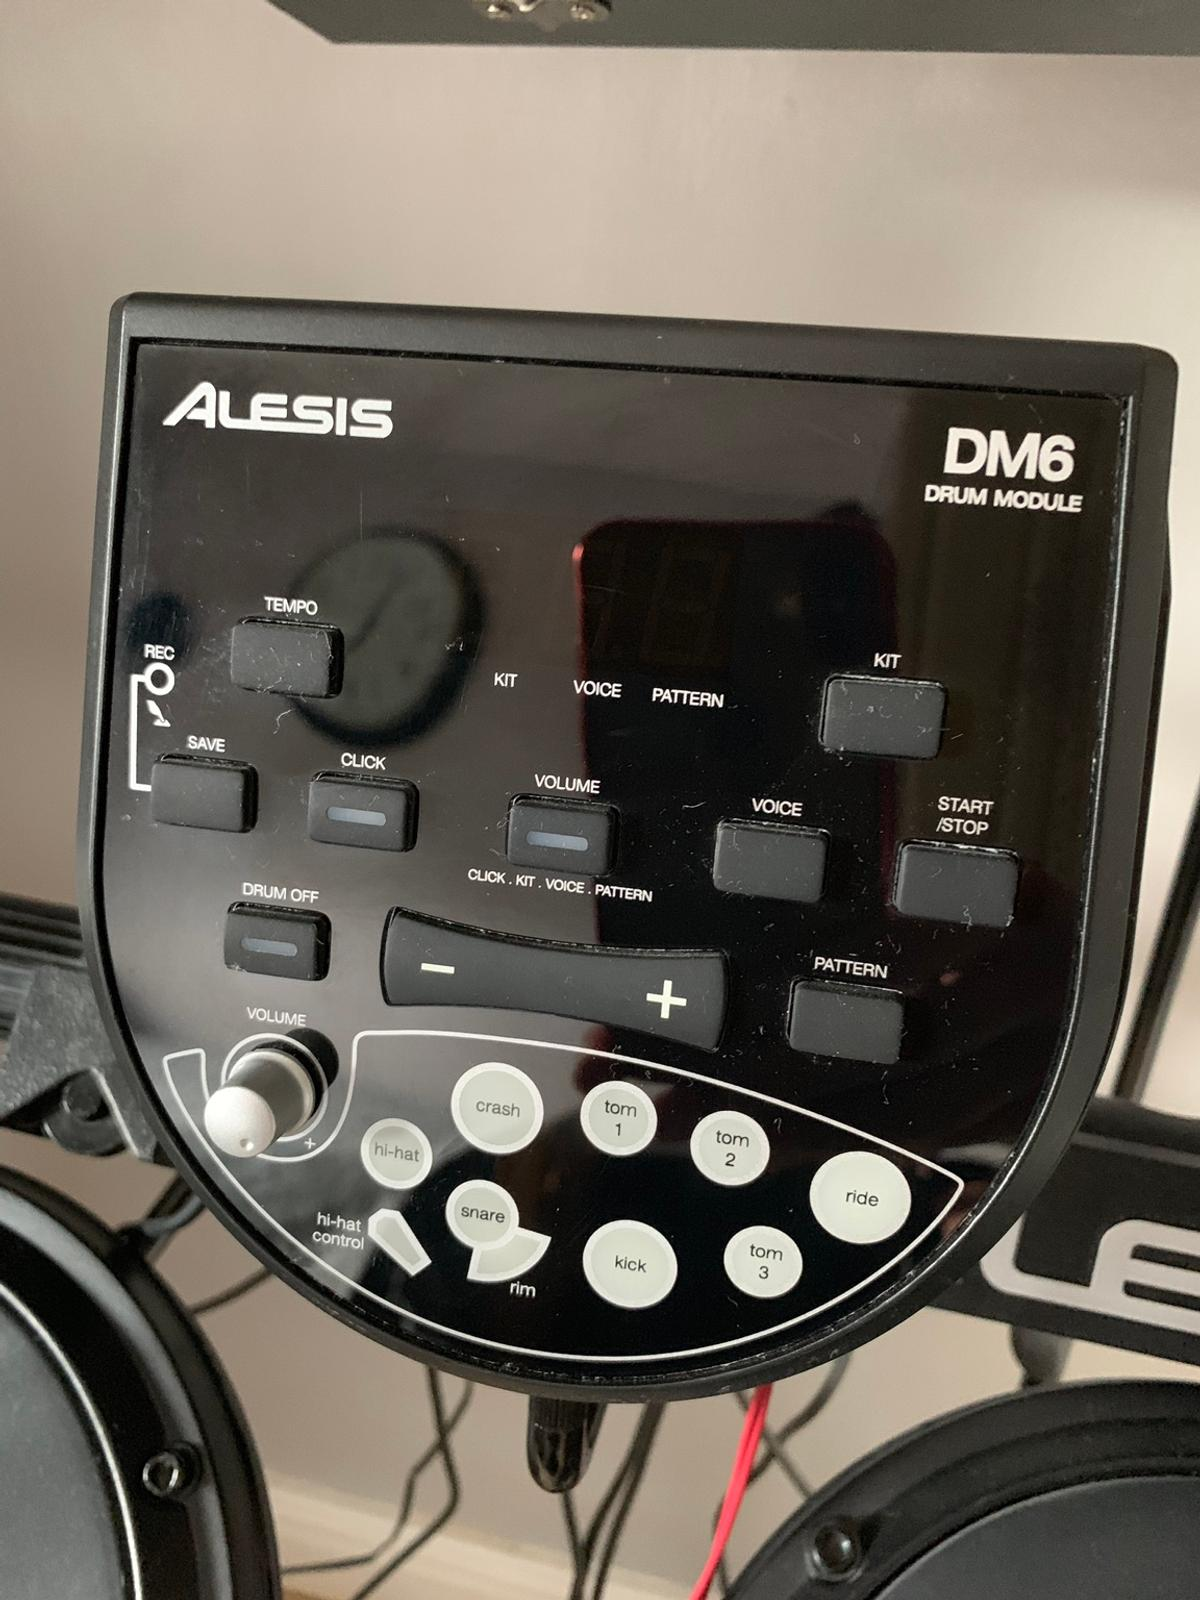 ALESIS DM6 Electric Drum Kit in S61 Rotherham for £230 00